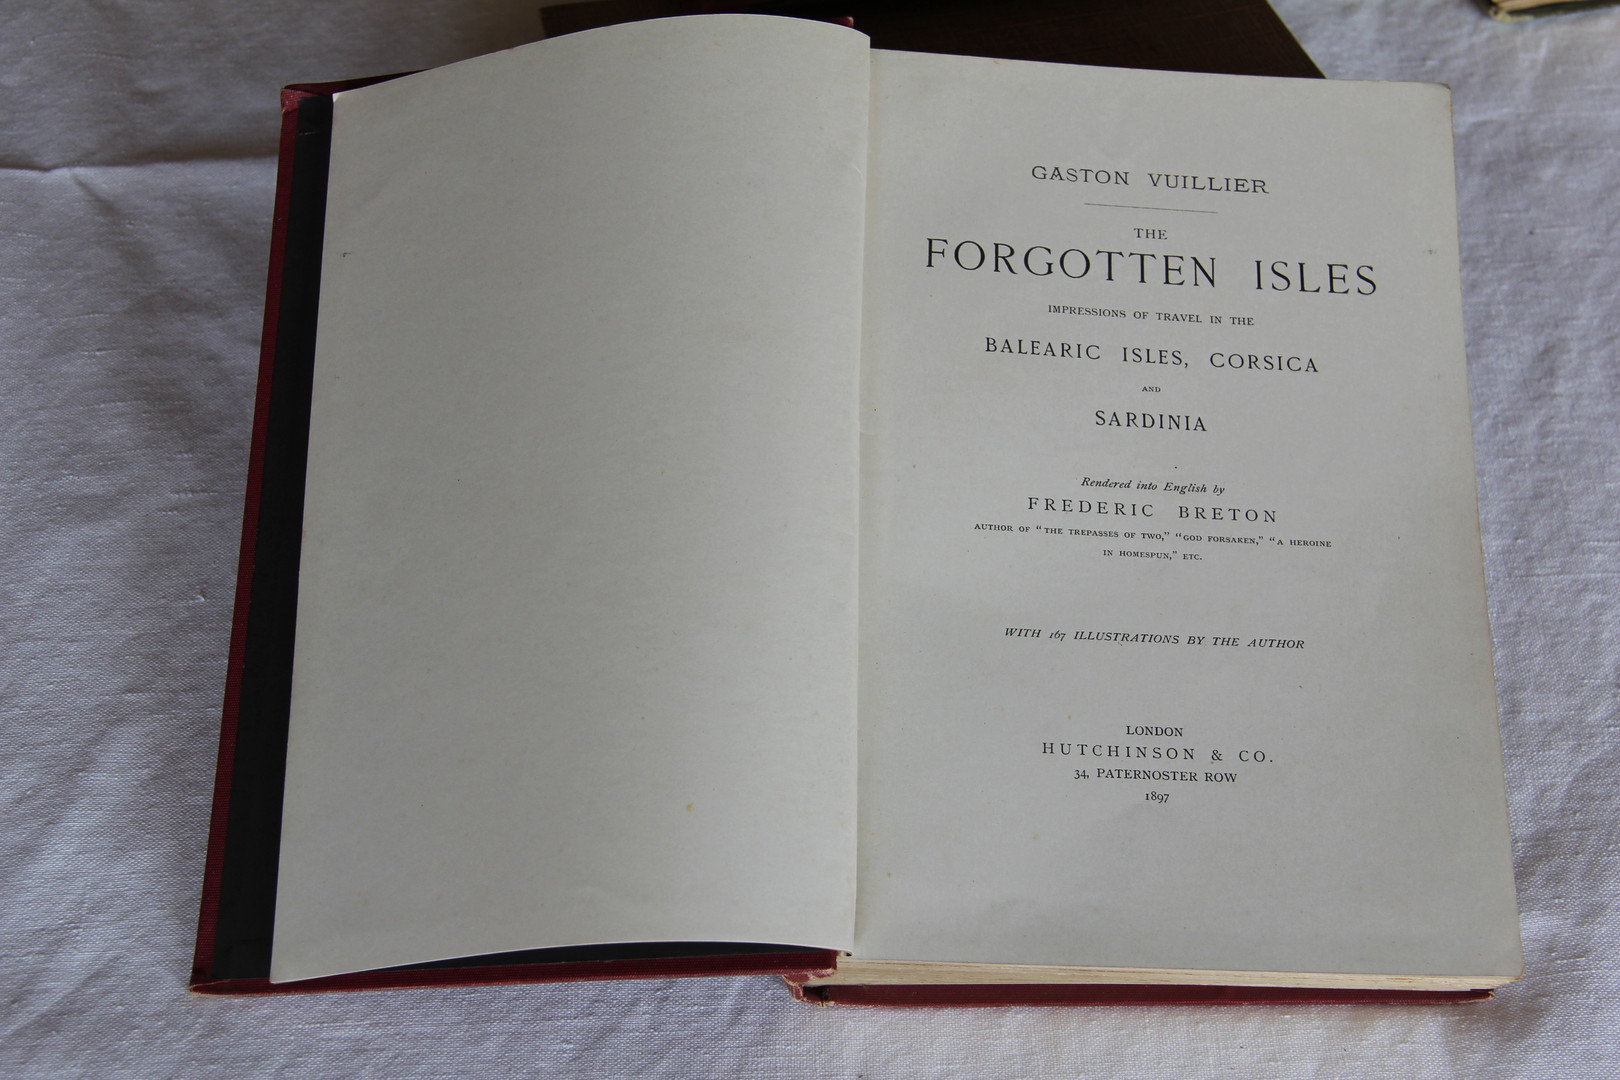 """English edition of """"The Forgotten Isles"""", by Gaston Vuillier (1897)."""